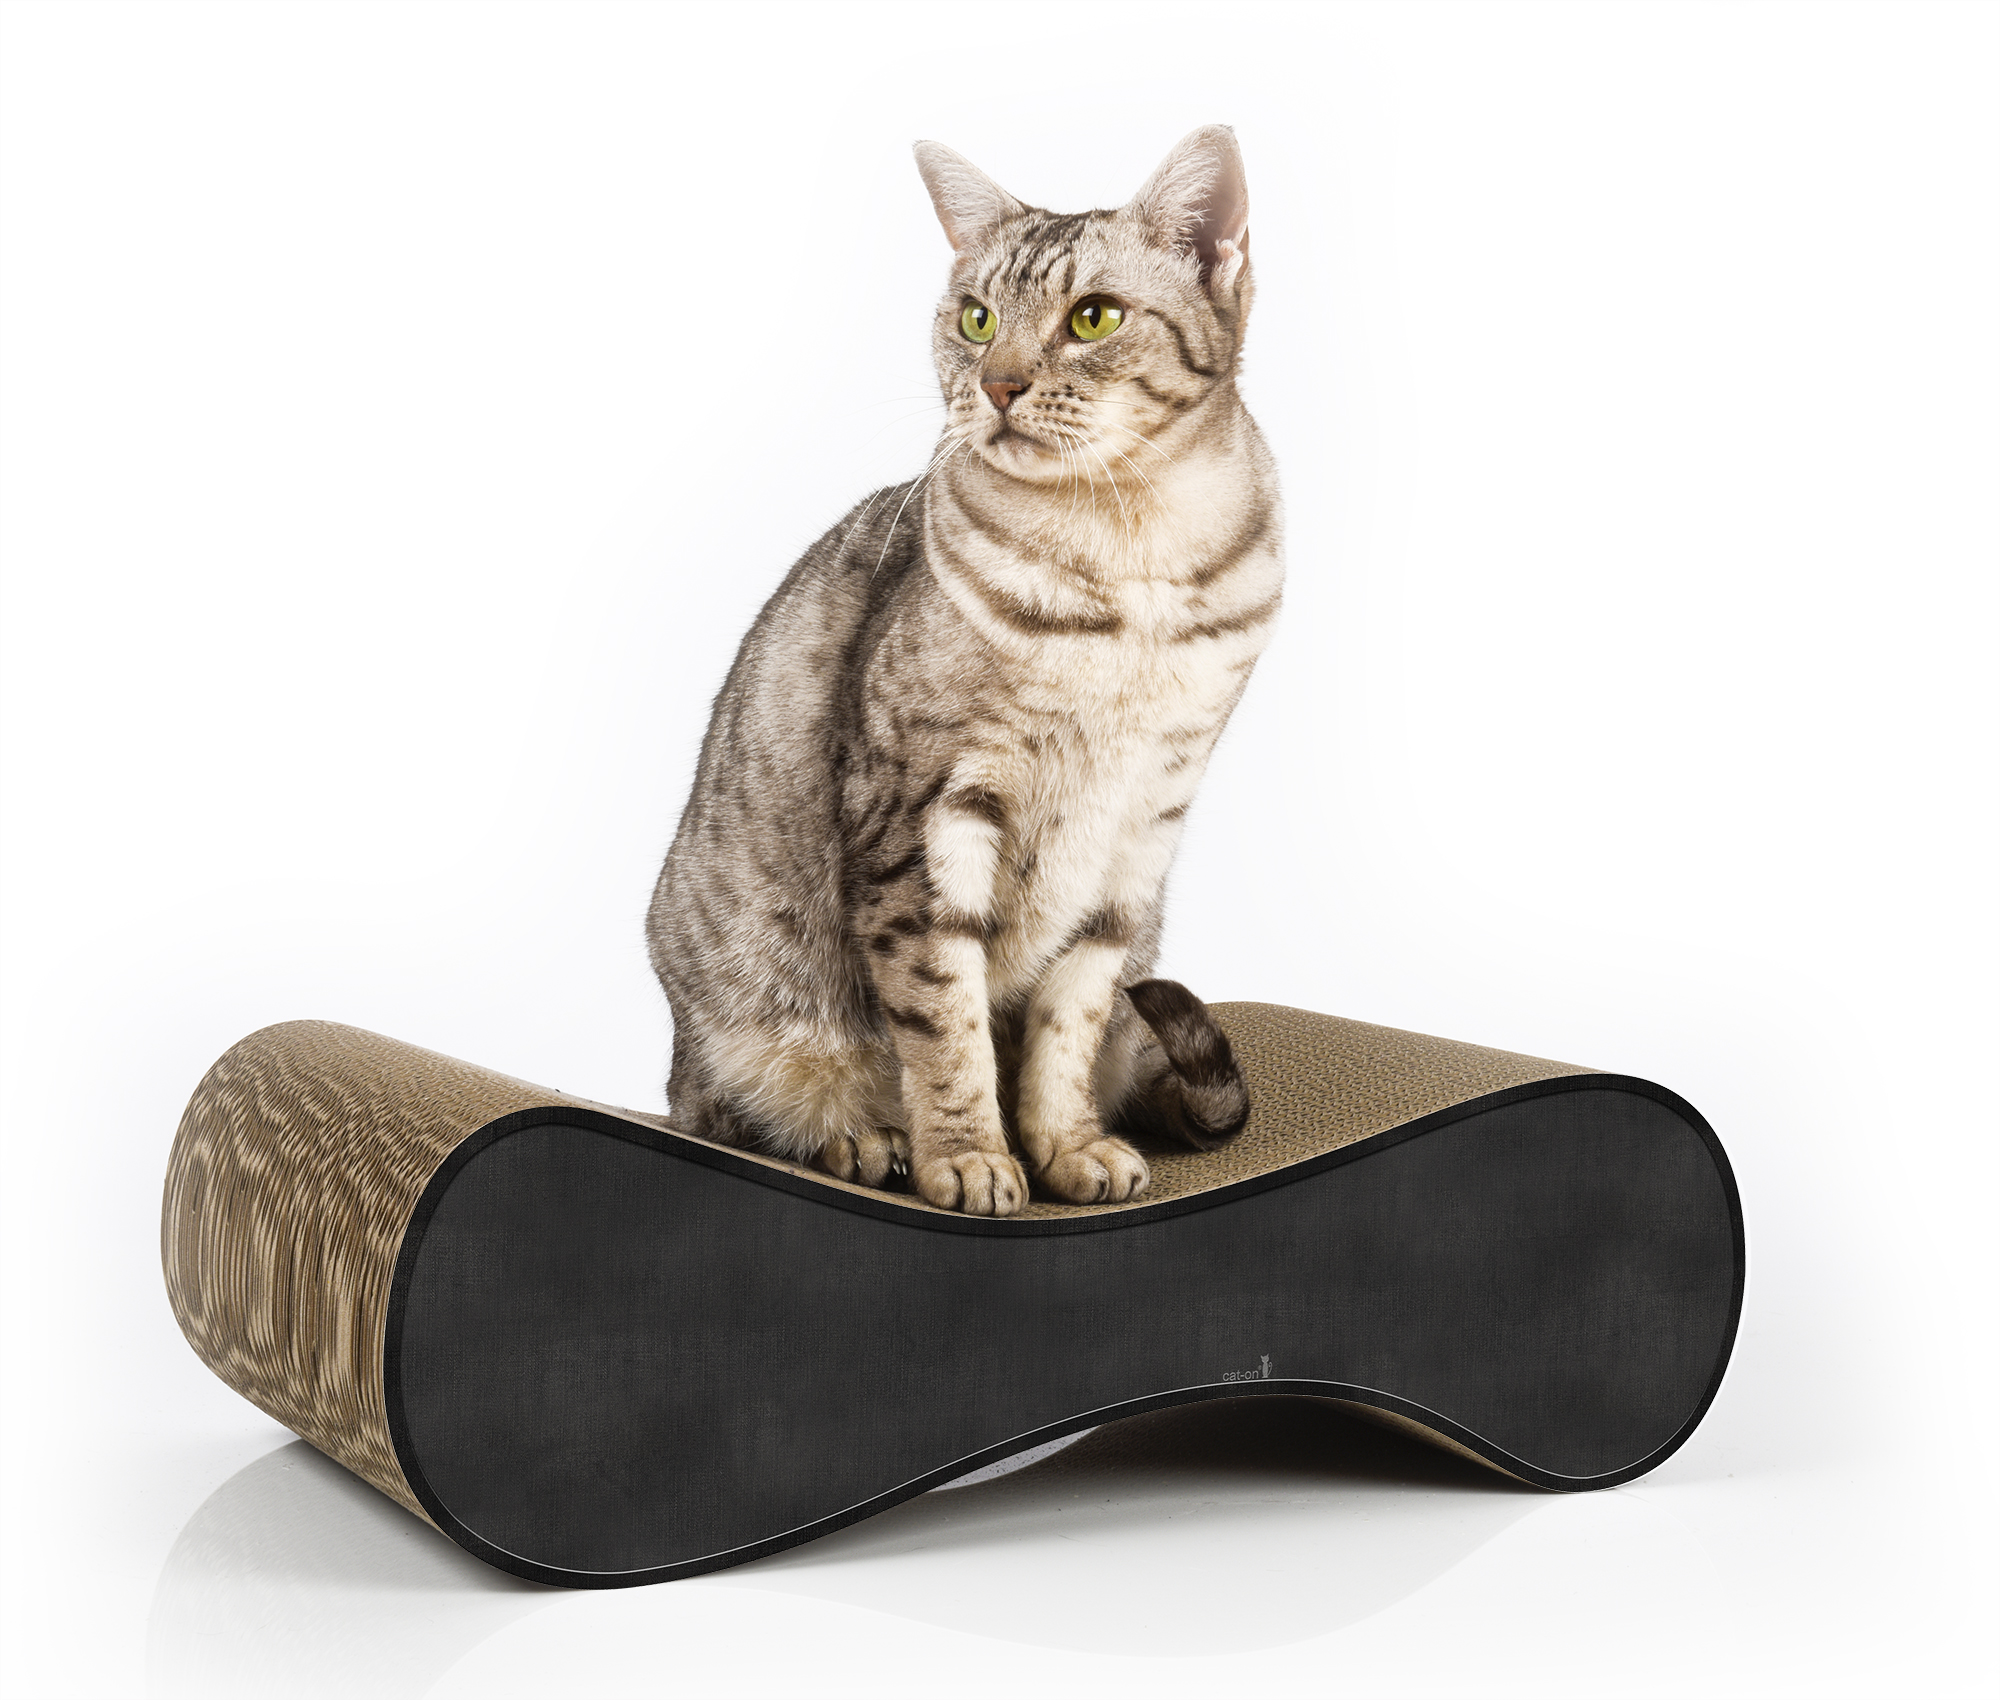 Medium cat scratcher Le Ver S - color: 013 - black - anthracite